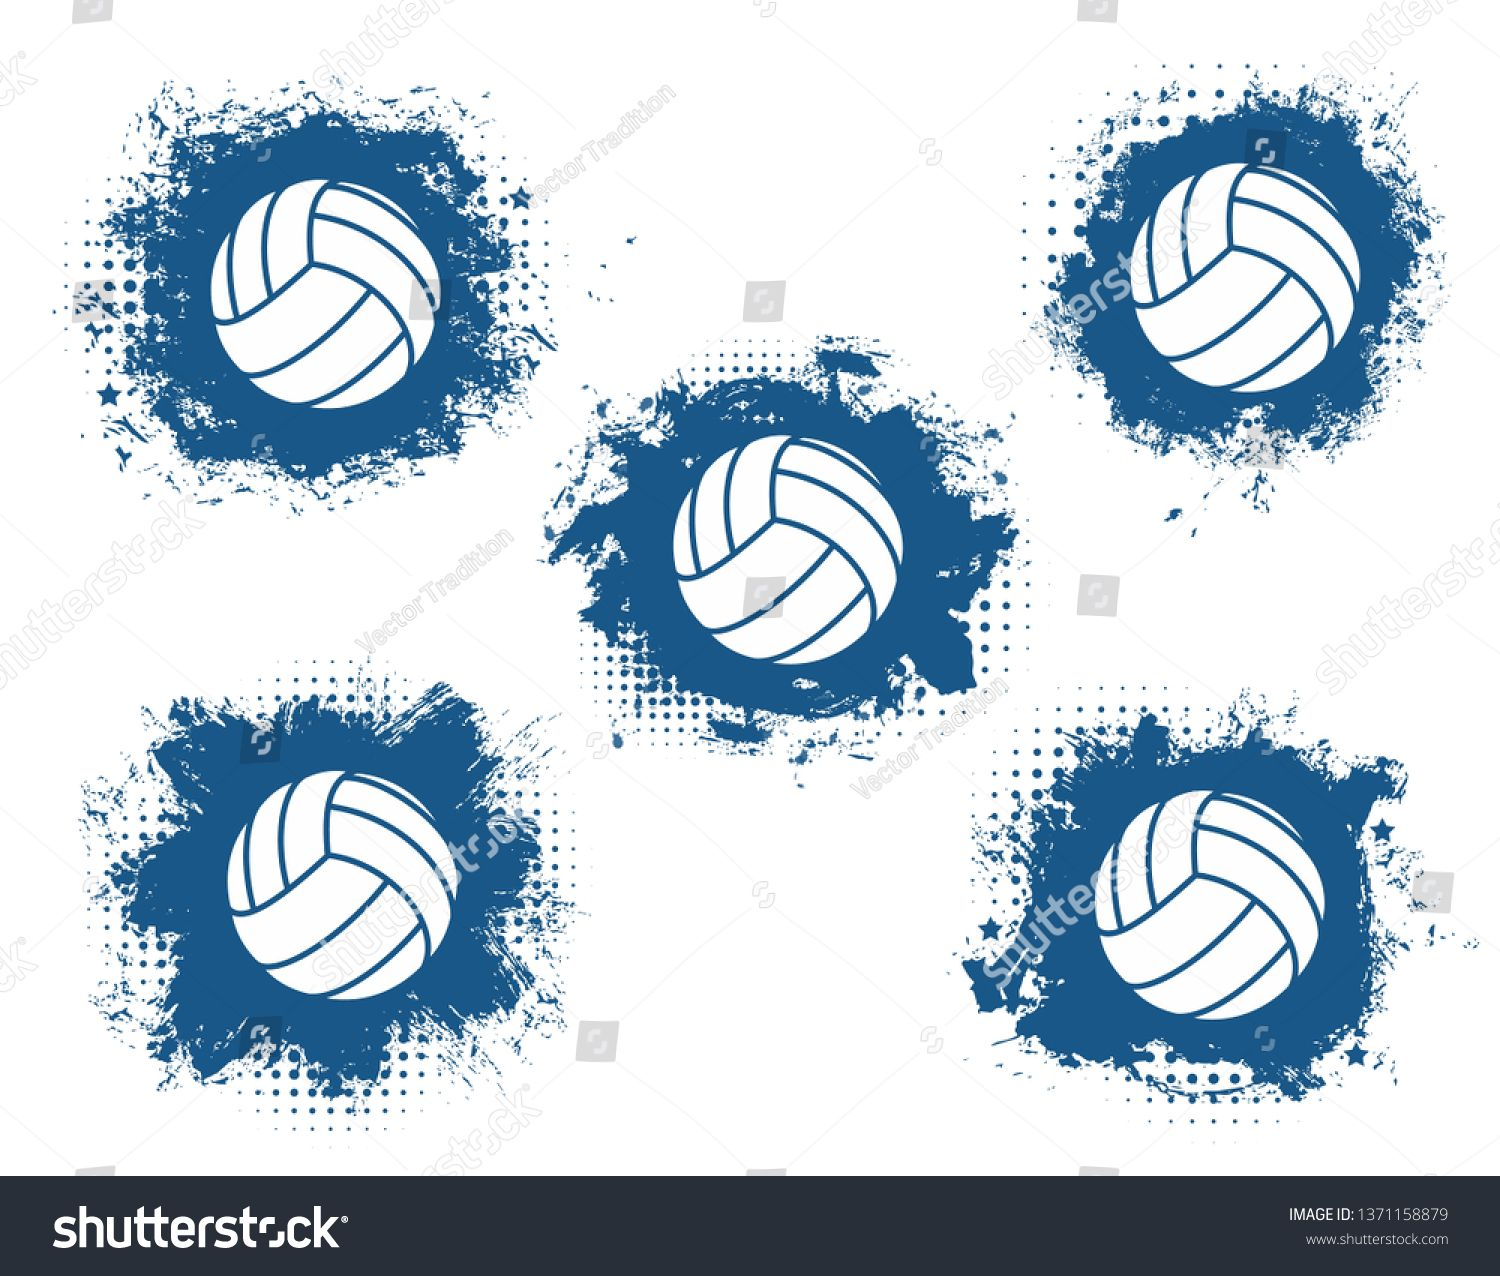 Volleyball Balls Grunge Vector Icons With Blue Halftone Sport Game Equipment Team Player Sporting Items Isolated Sym Art Logo Vector Icons Illustration Design